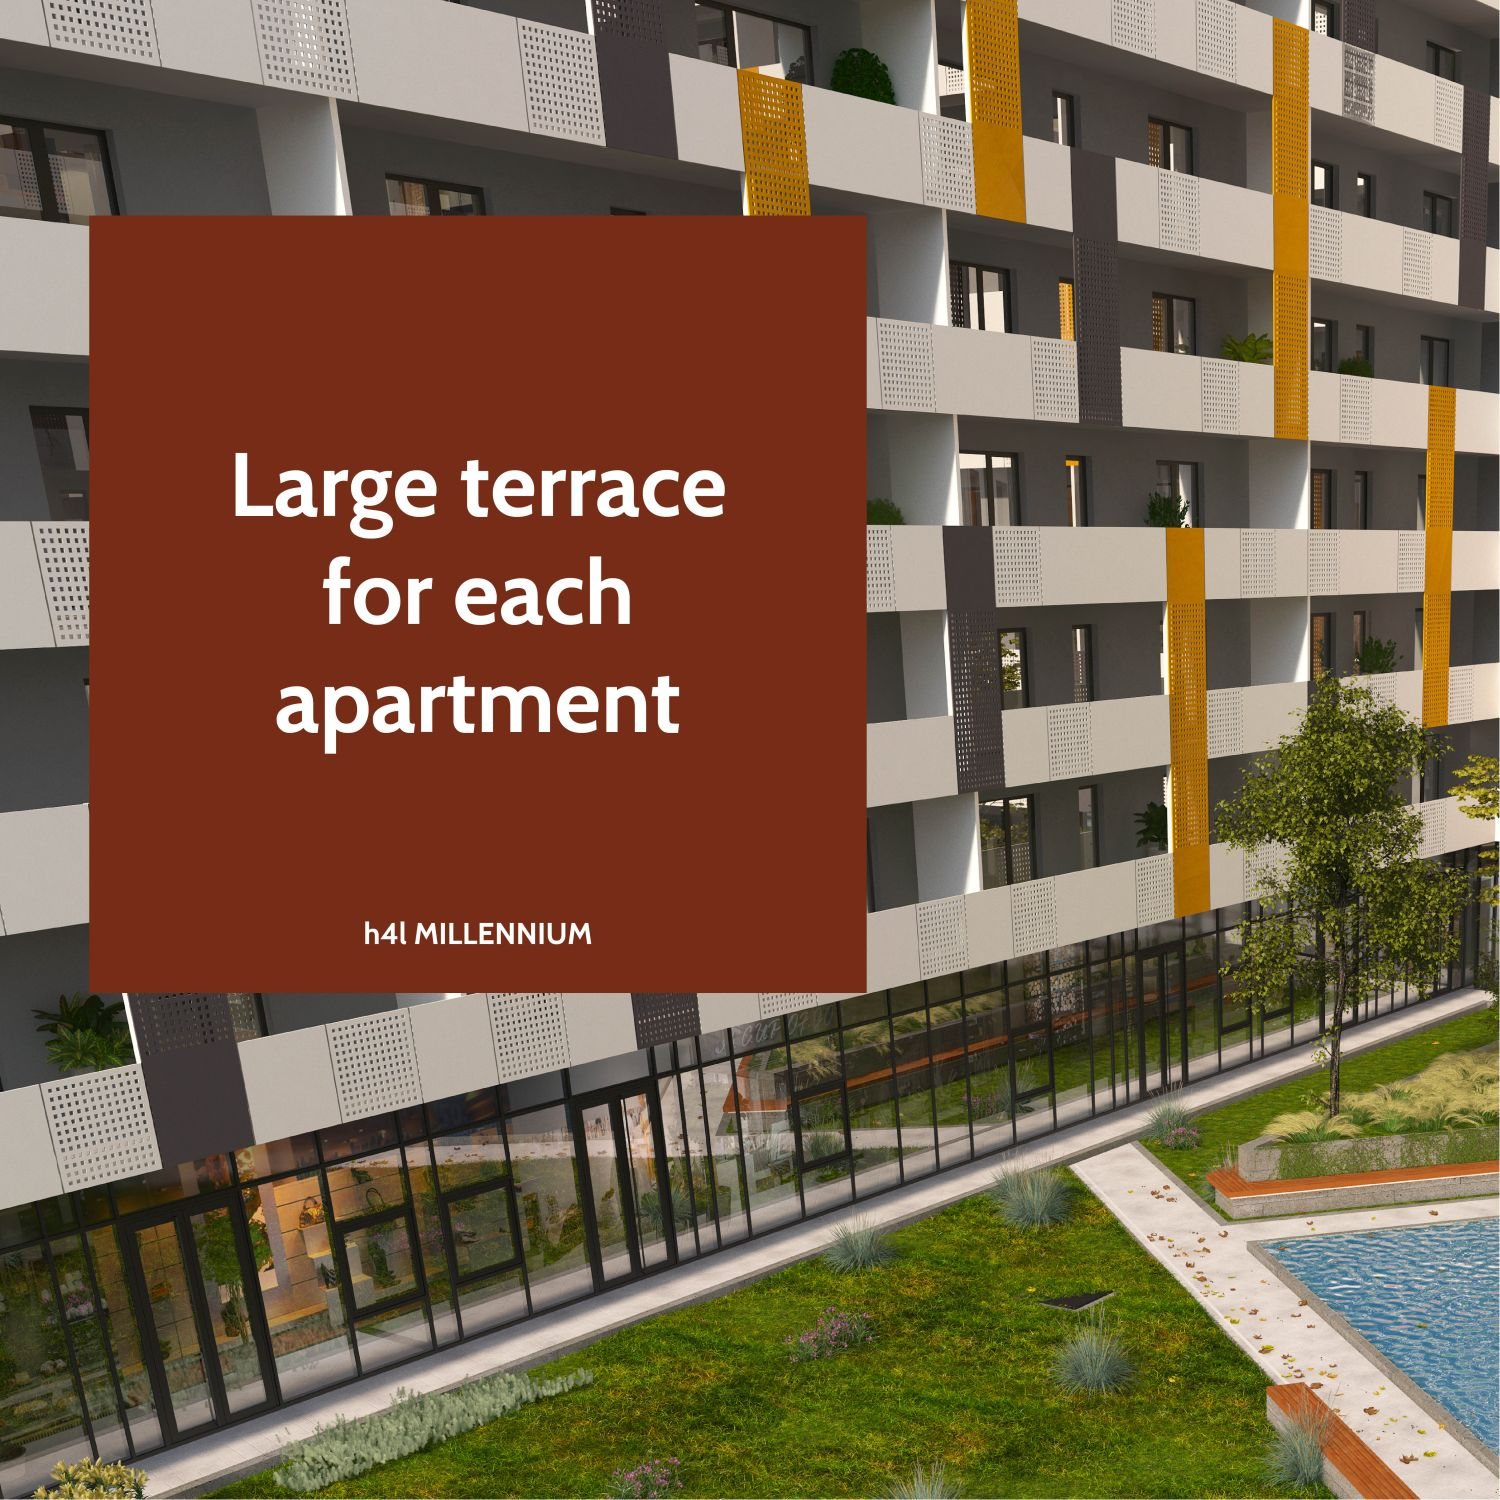 Large terrace for each apartment